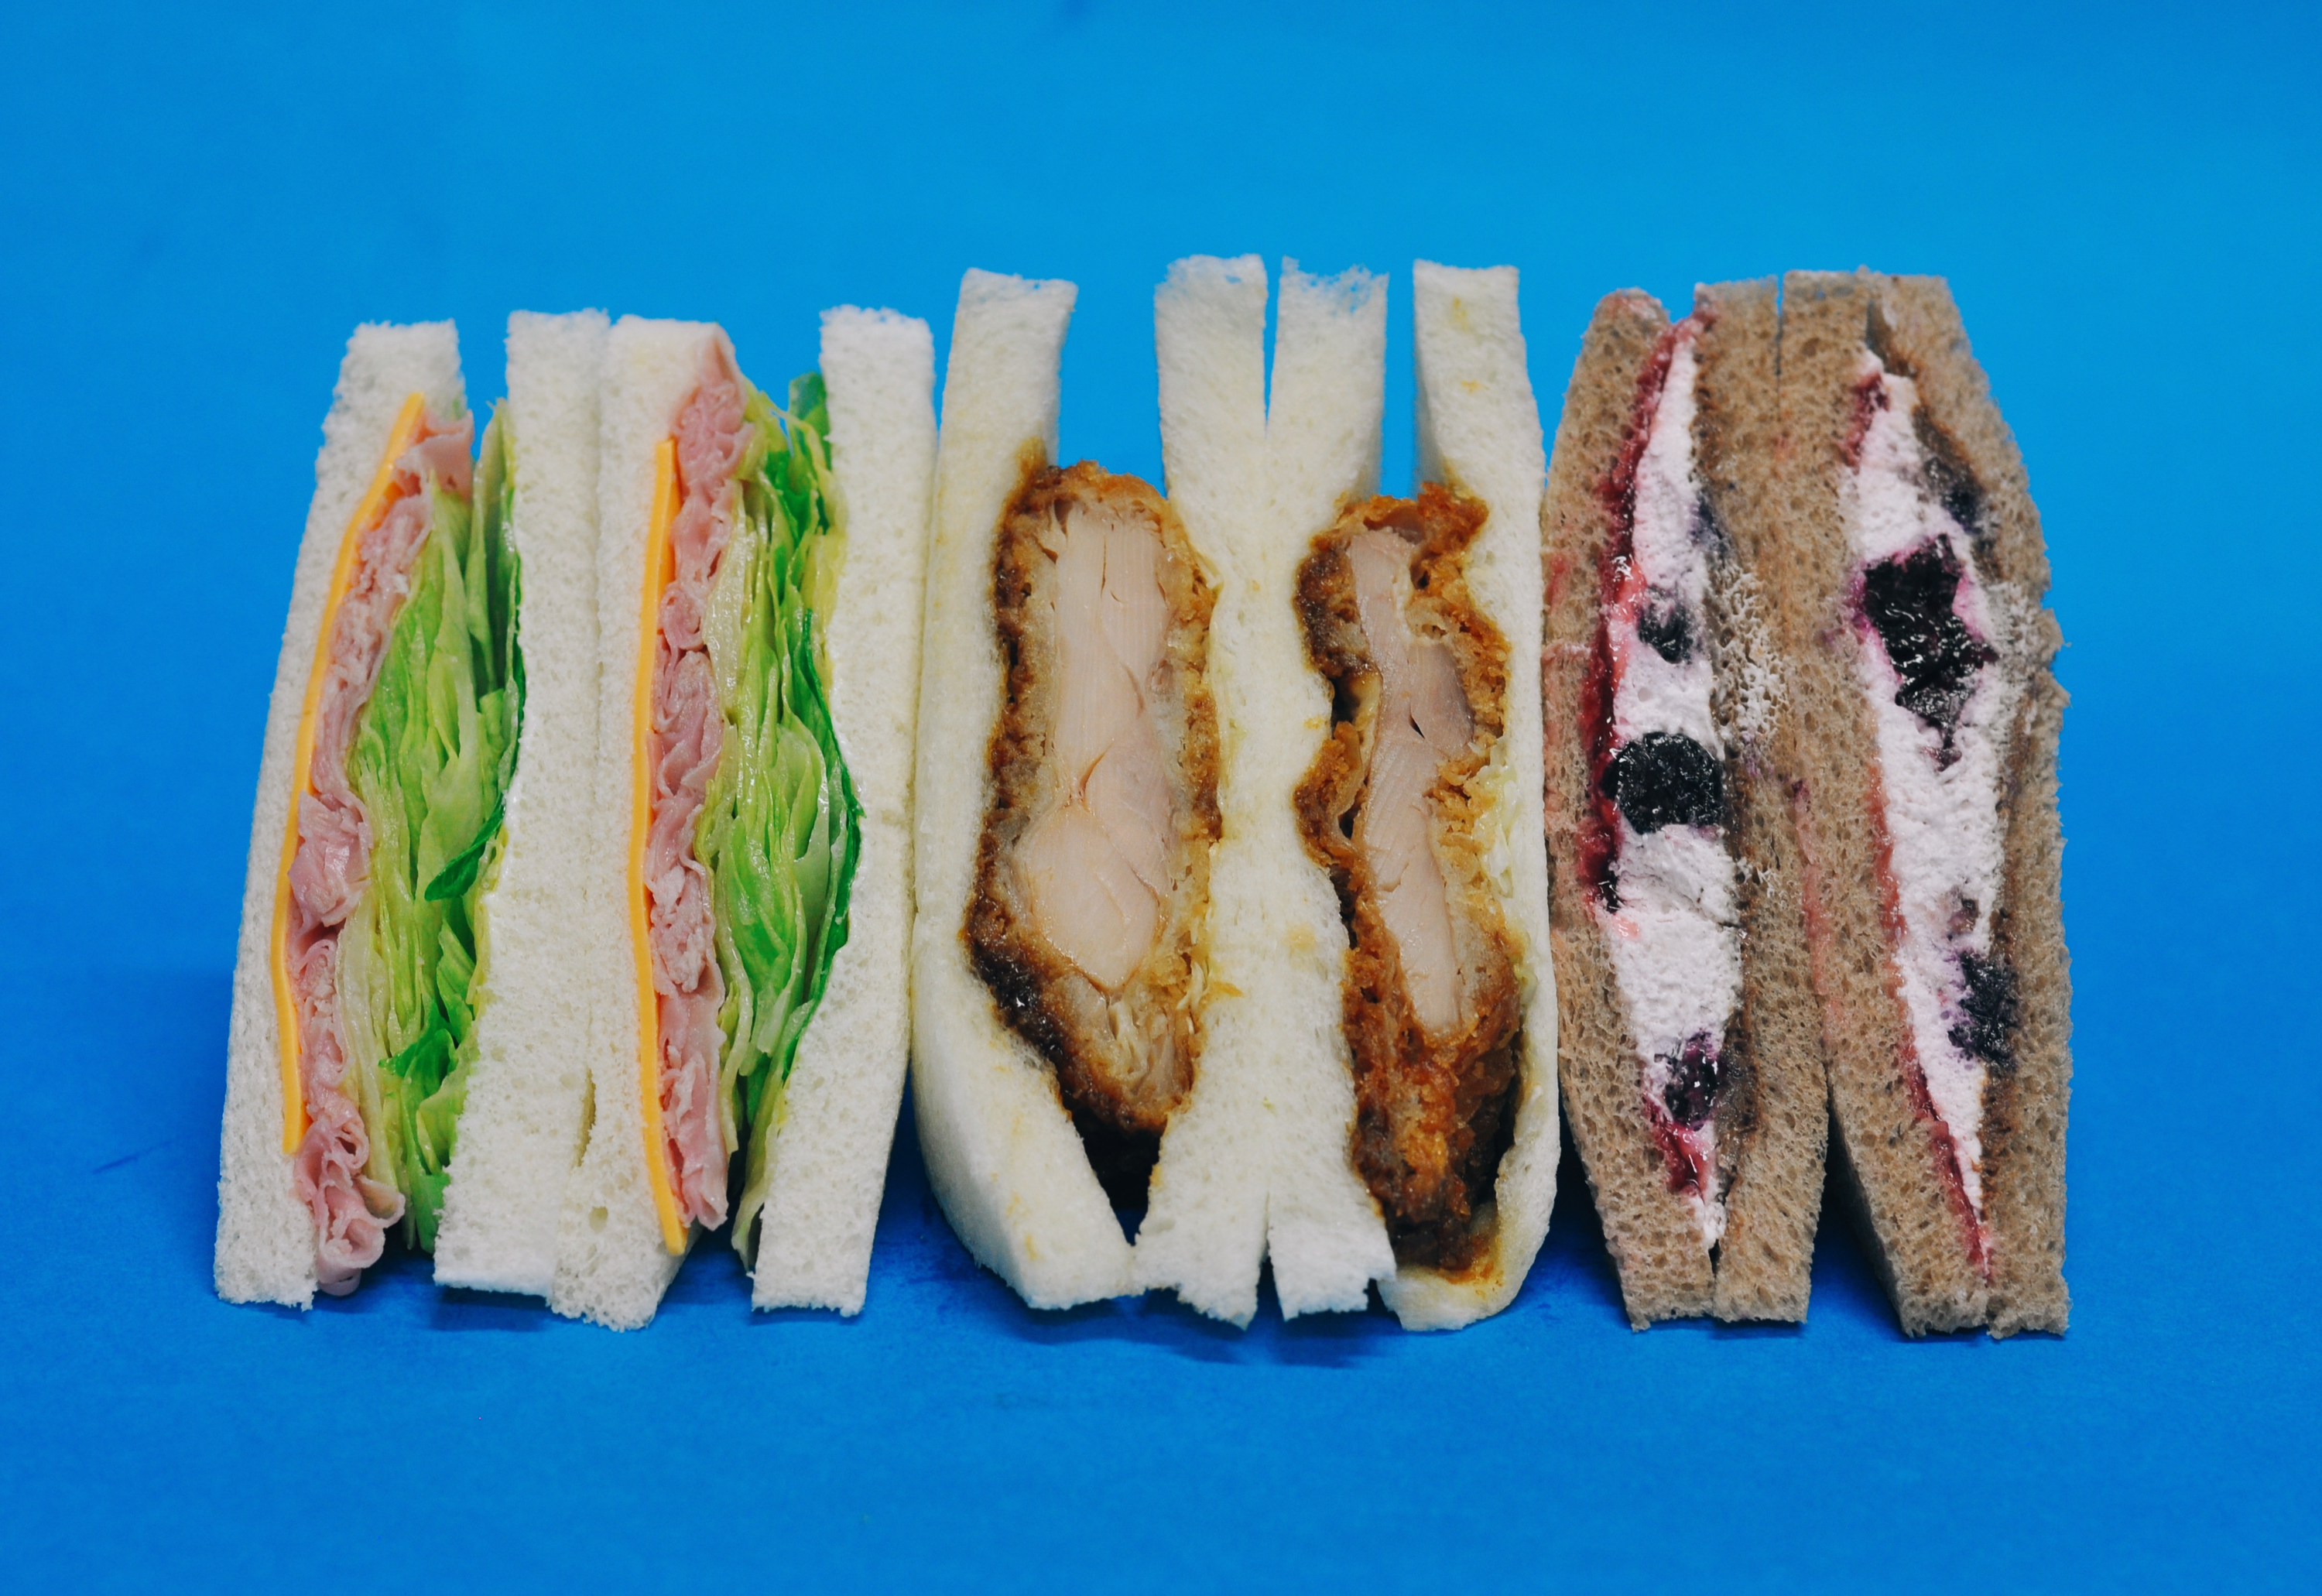 The konbini connoisseurs guide to sandwiches japan and restaurants pick up one of these tasty konbini sandwiches to nvjuhfo Choice Image